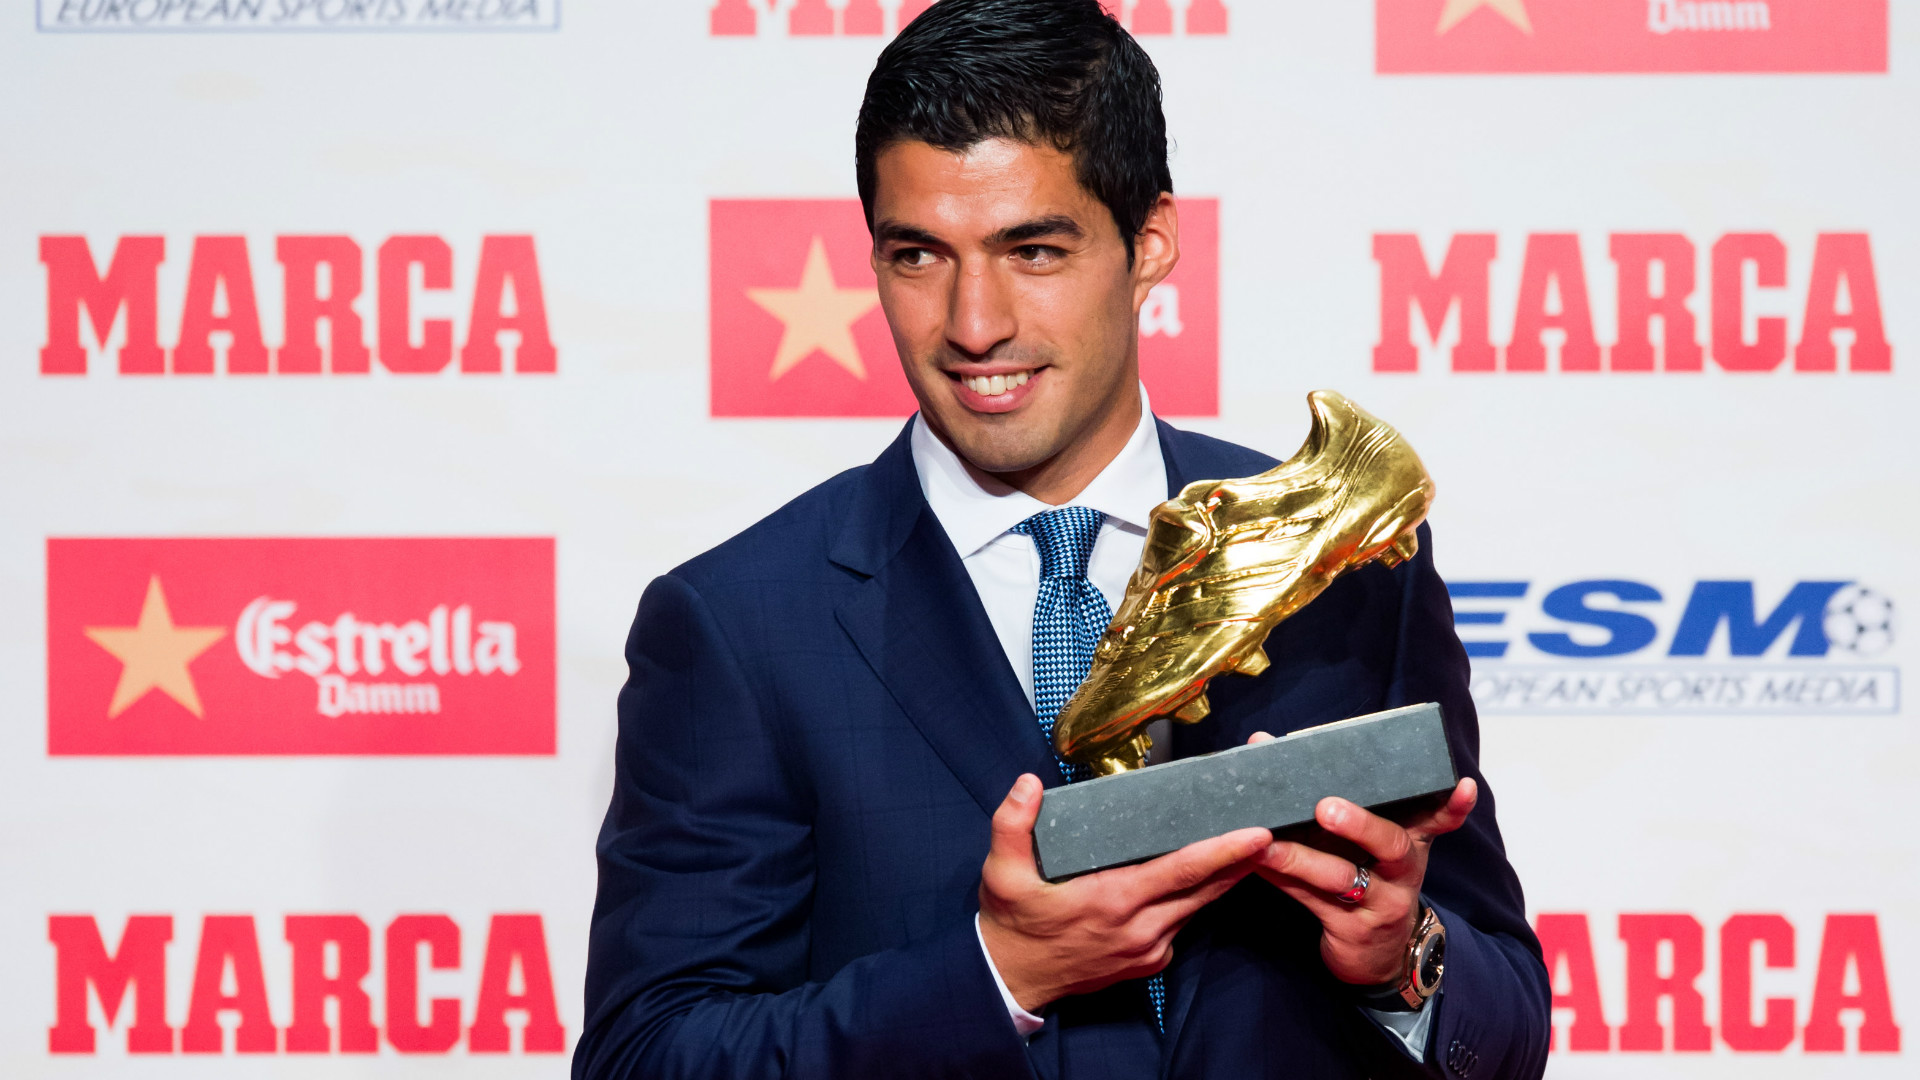 luis suarez football soccer player free hd golden foot cup background mobile desktop download jpg